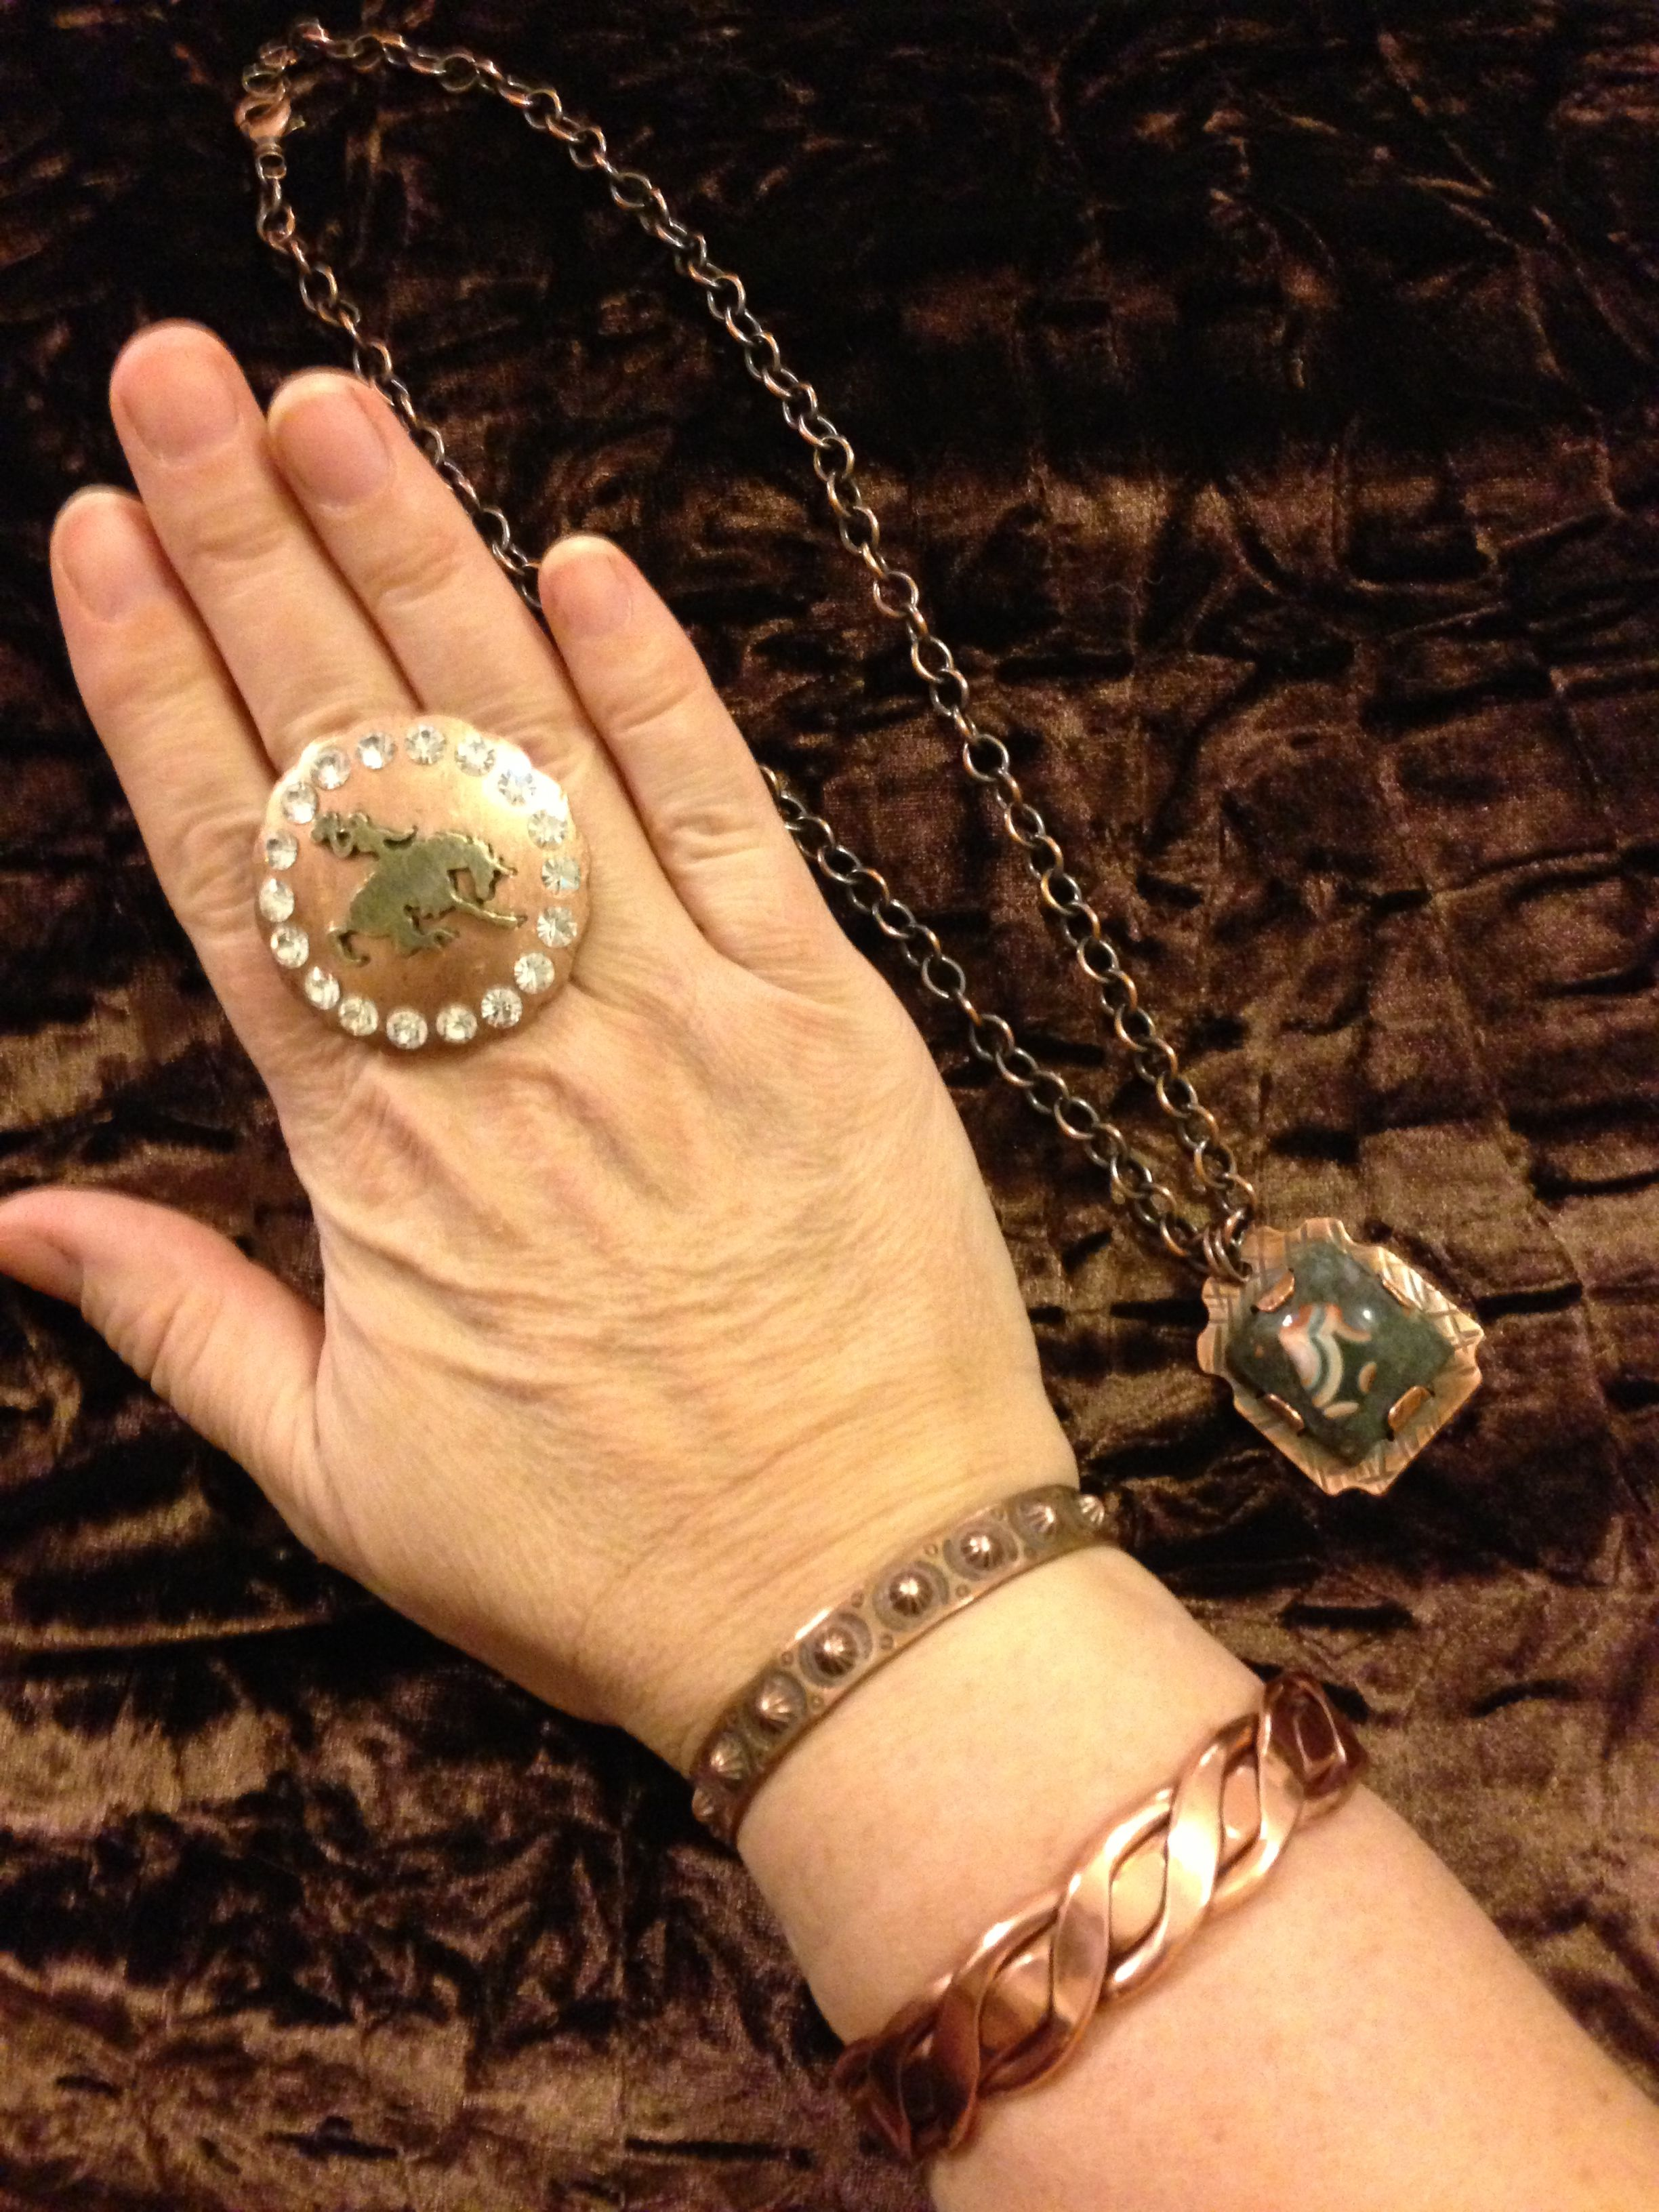 10+ Jewelry stores in rock springs wy ideas in 2021